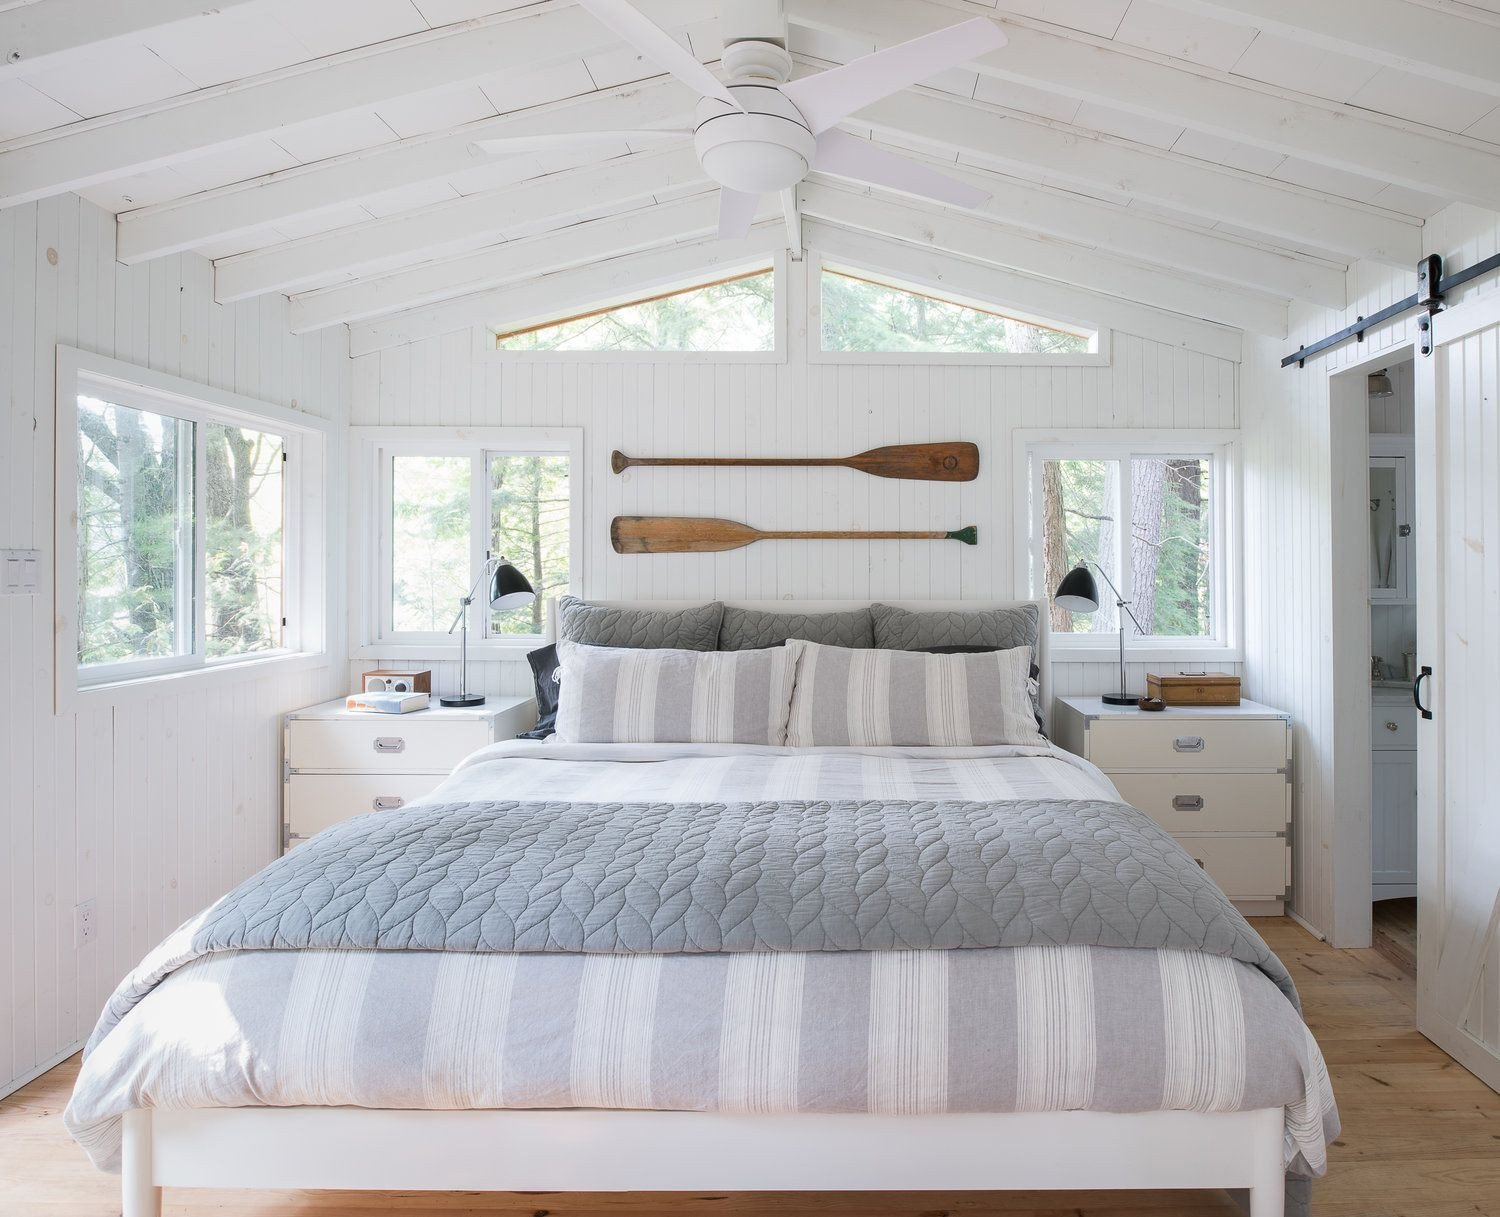 Lake House Decorating Ideas Bedroom New Photo Alex Lukey for House & Home